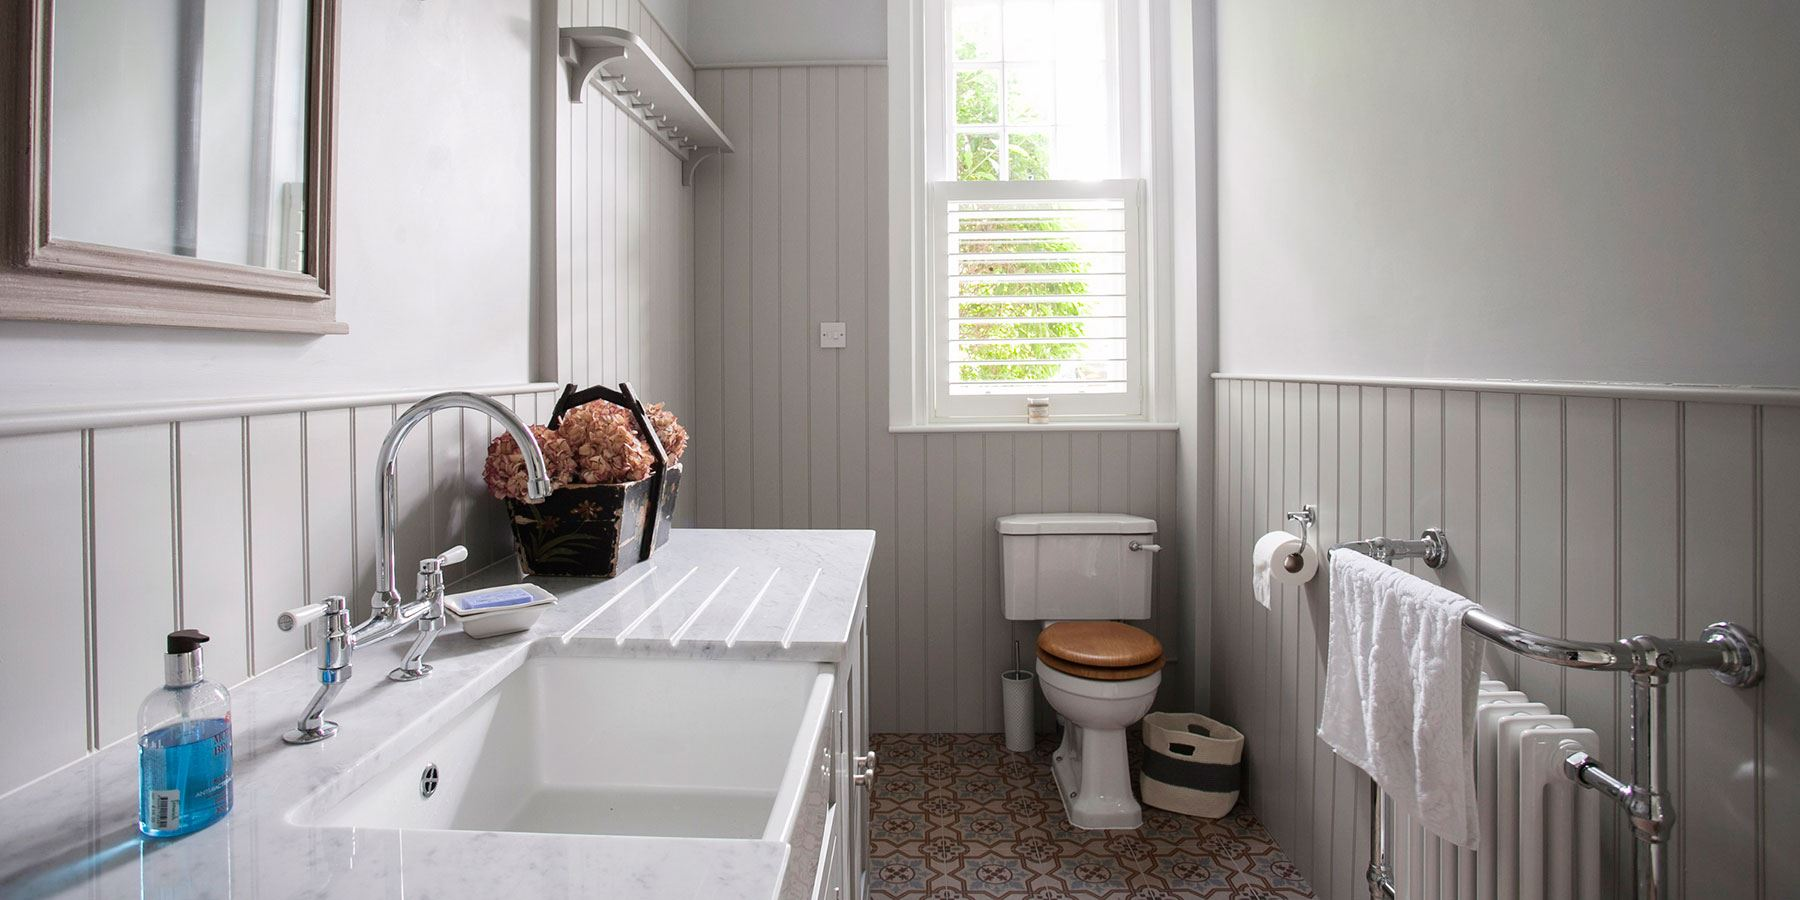 Utility room - Small Space Solutions